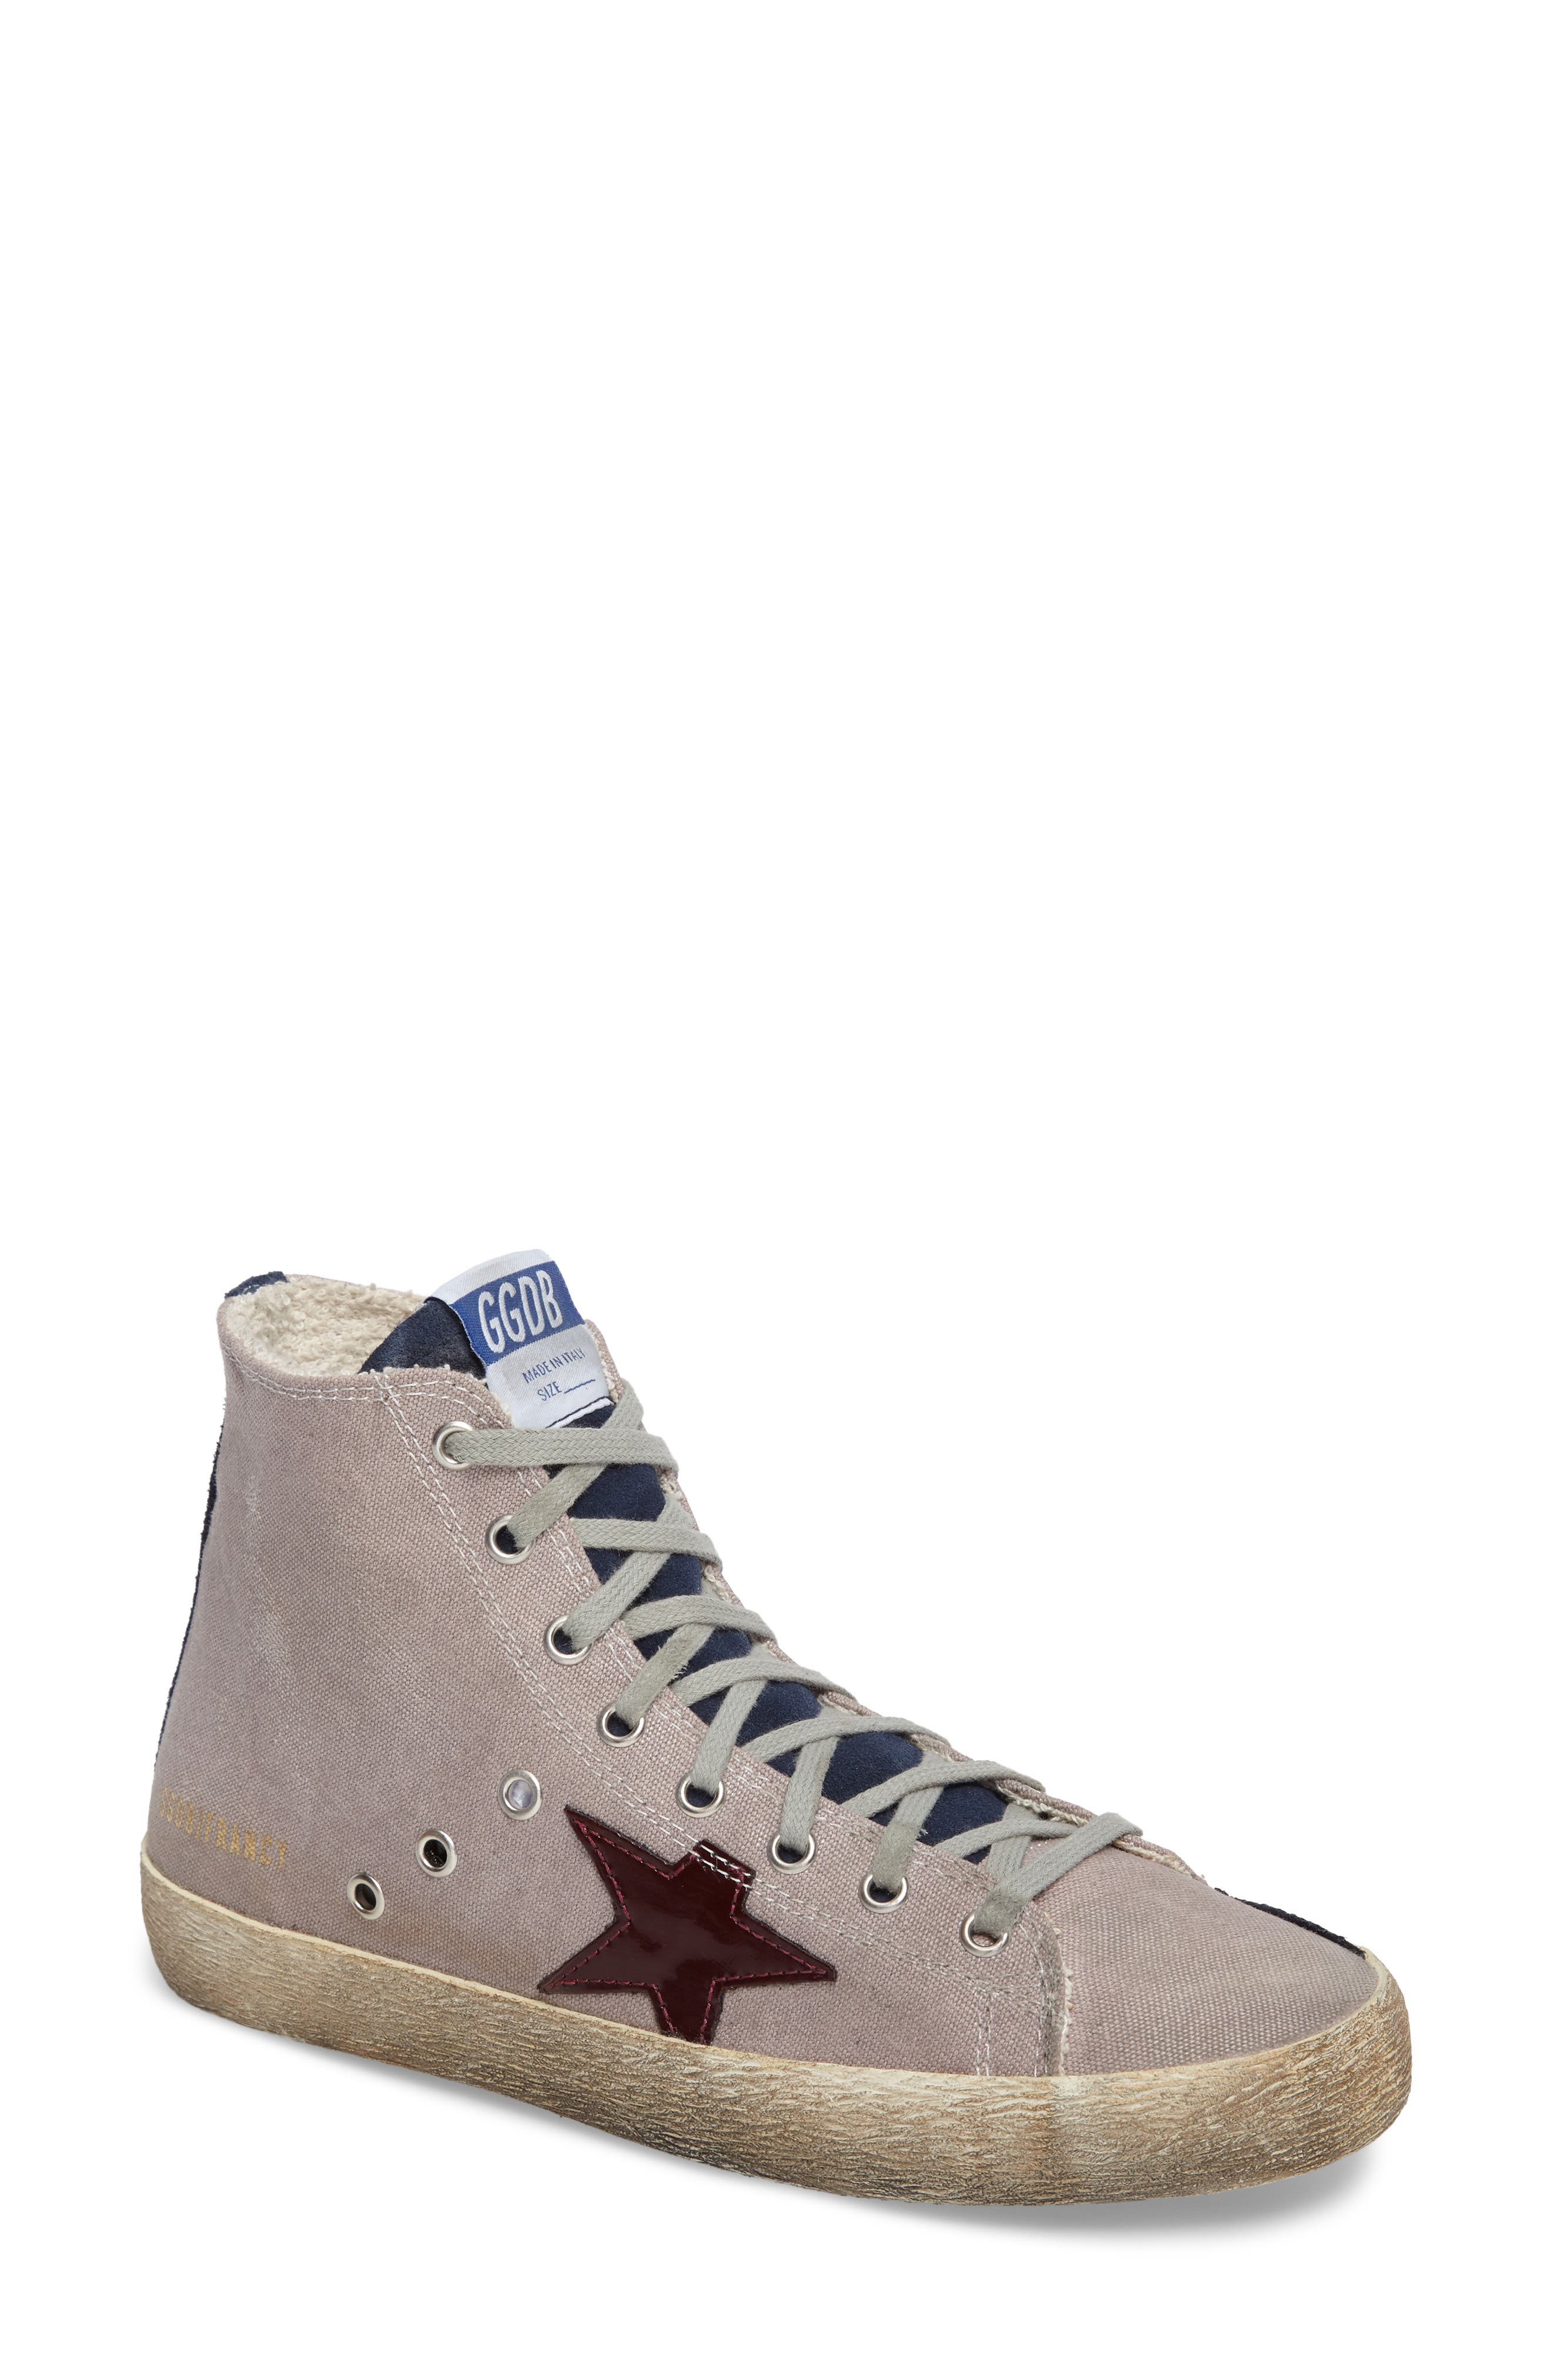 Main Image - Golden Goose Francy Mid Top Sneaker (Women)